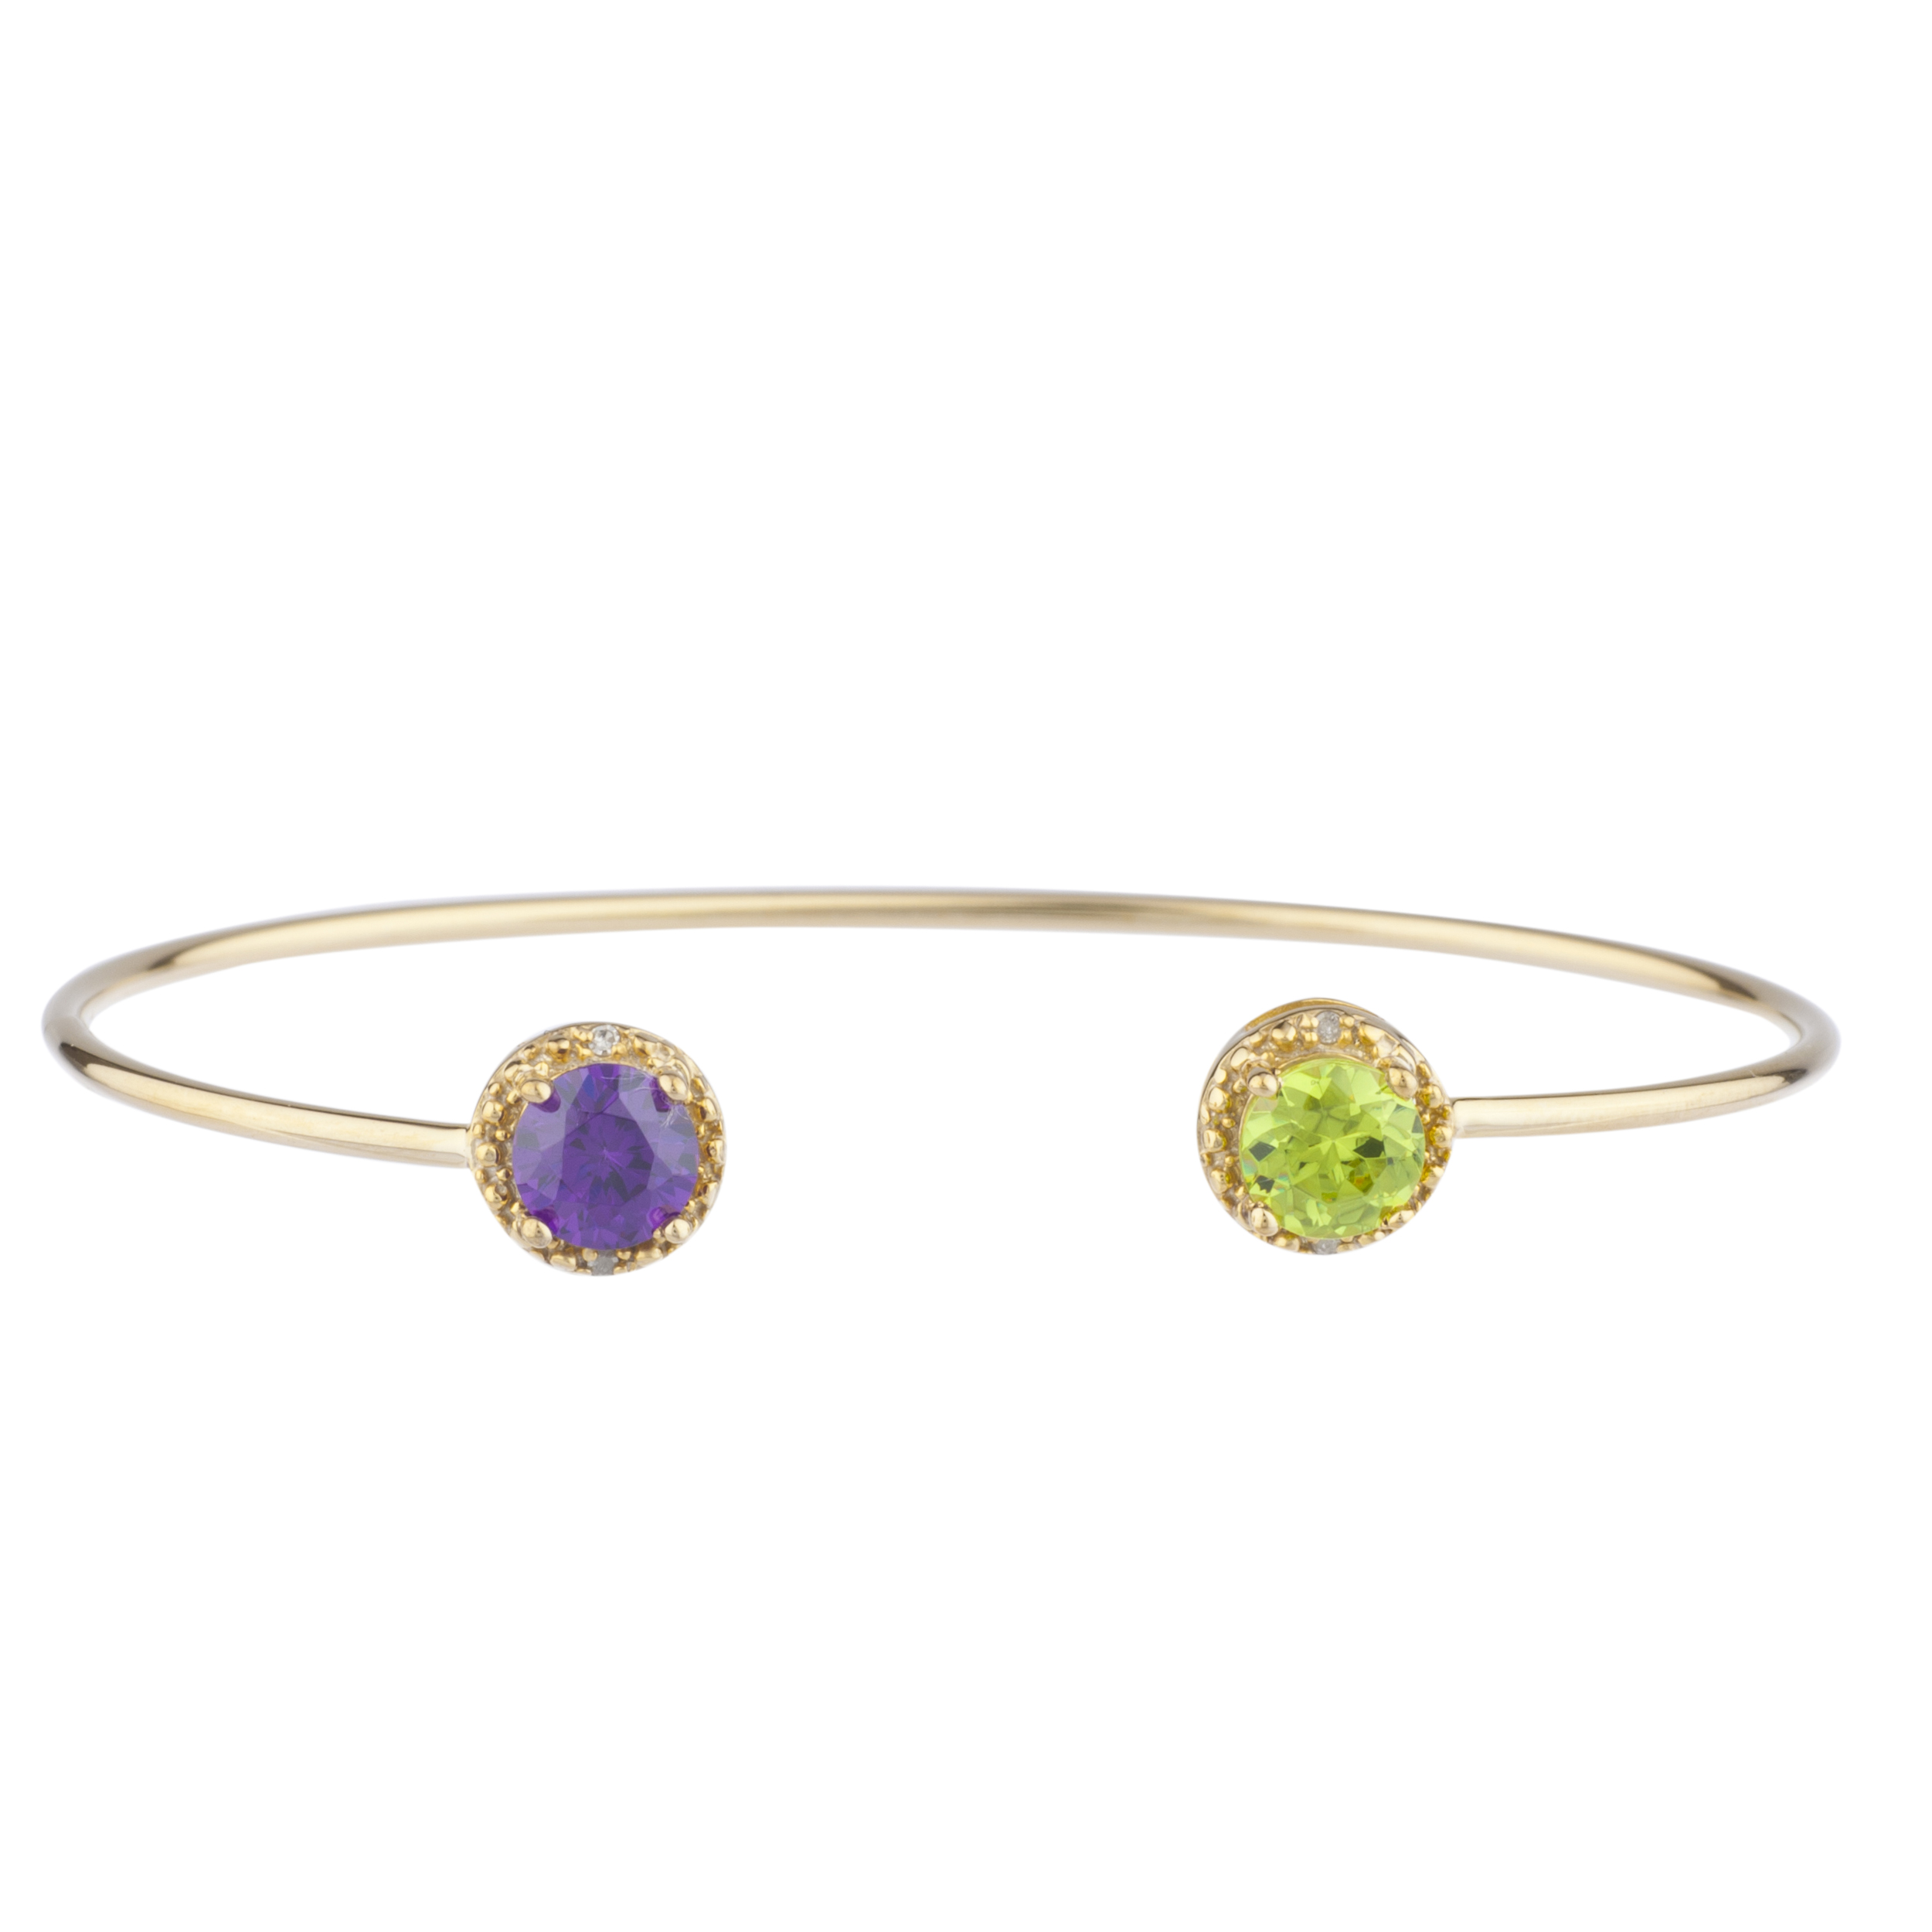 Amethyst & Peridot Diamond Bangle Round Bracelet 14Kt Yellow Gold Plated Over .925 Sterling Silver by Elizabeth Jewelry Inc